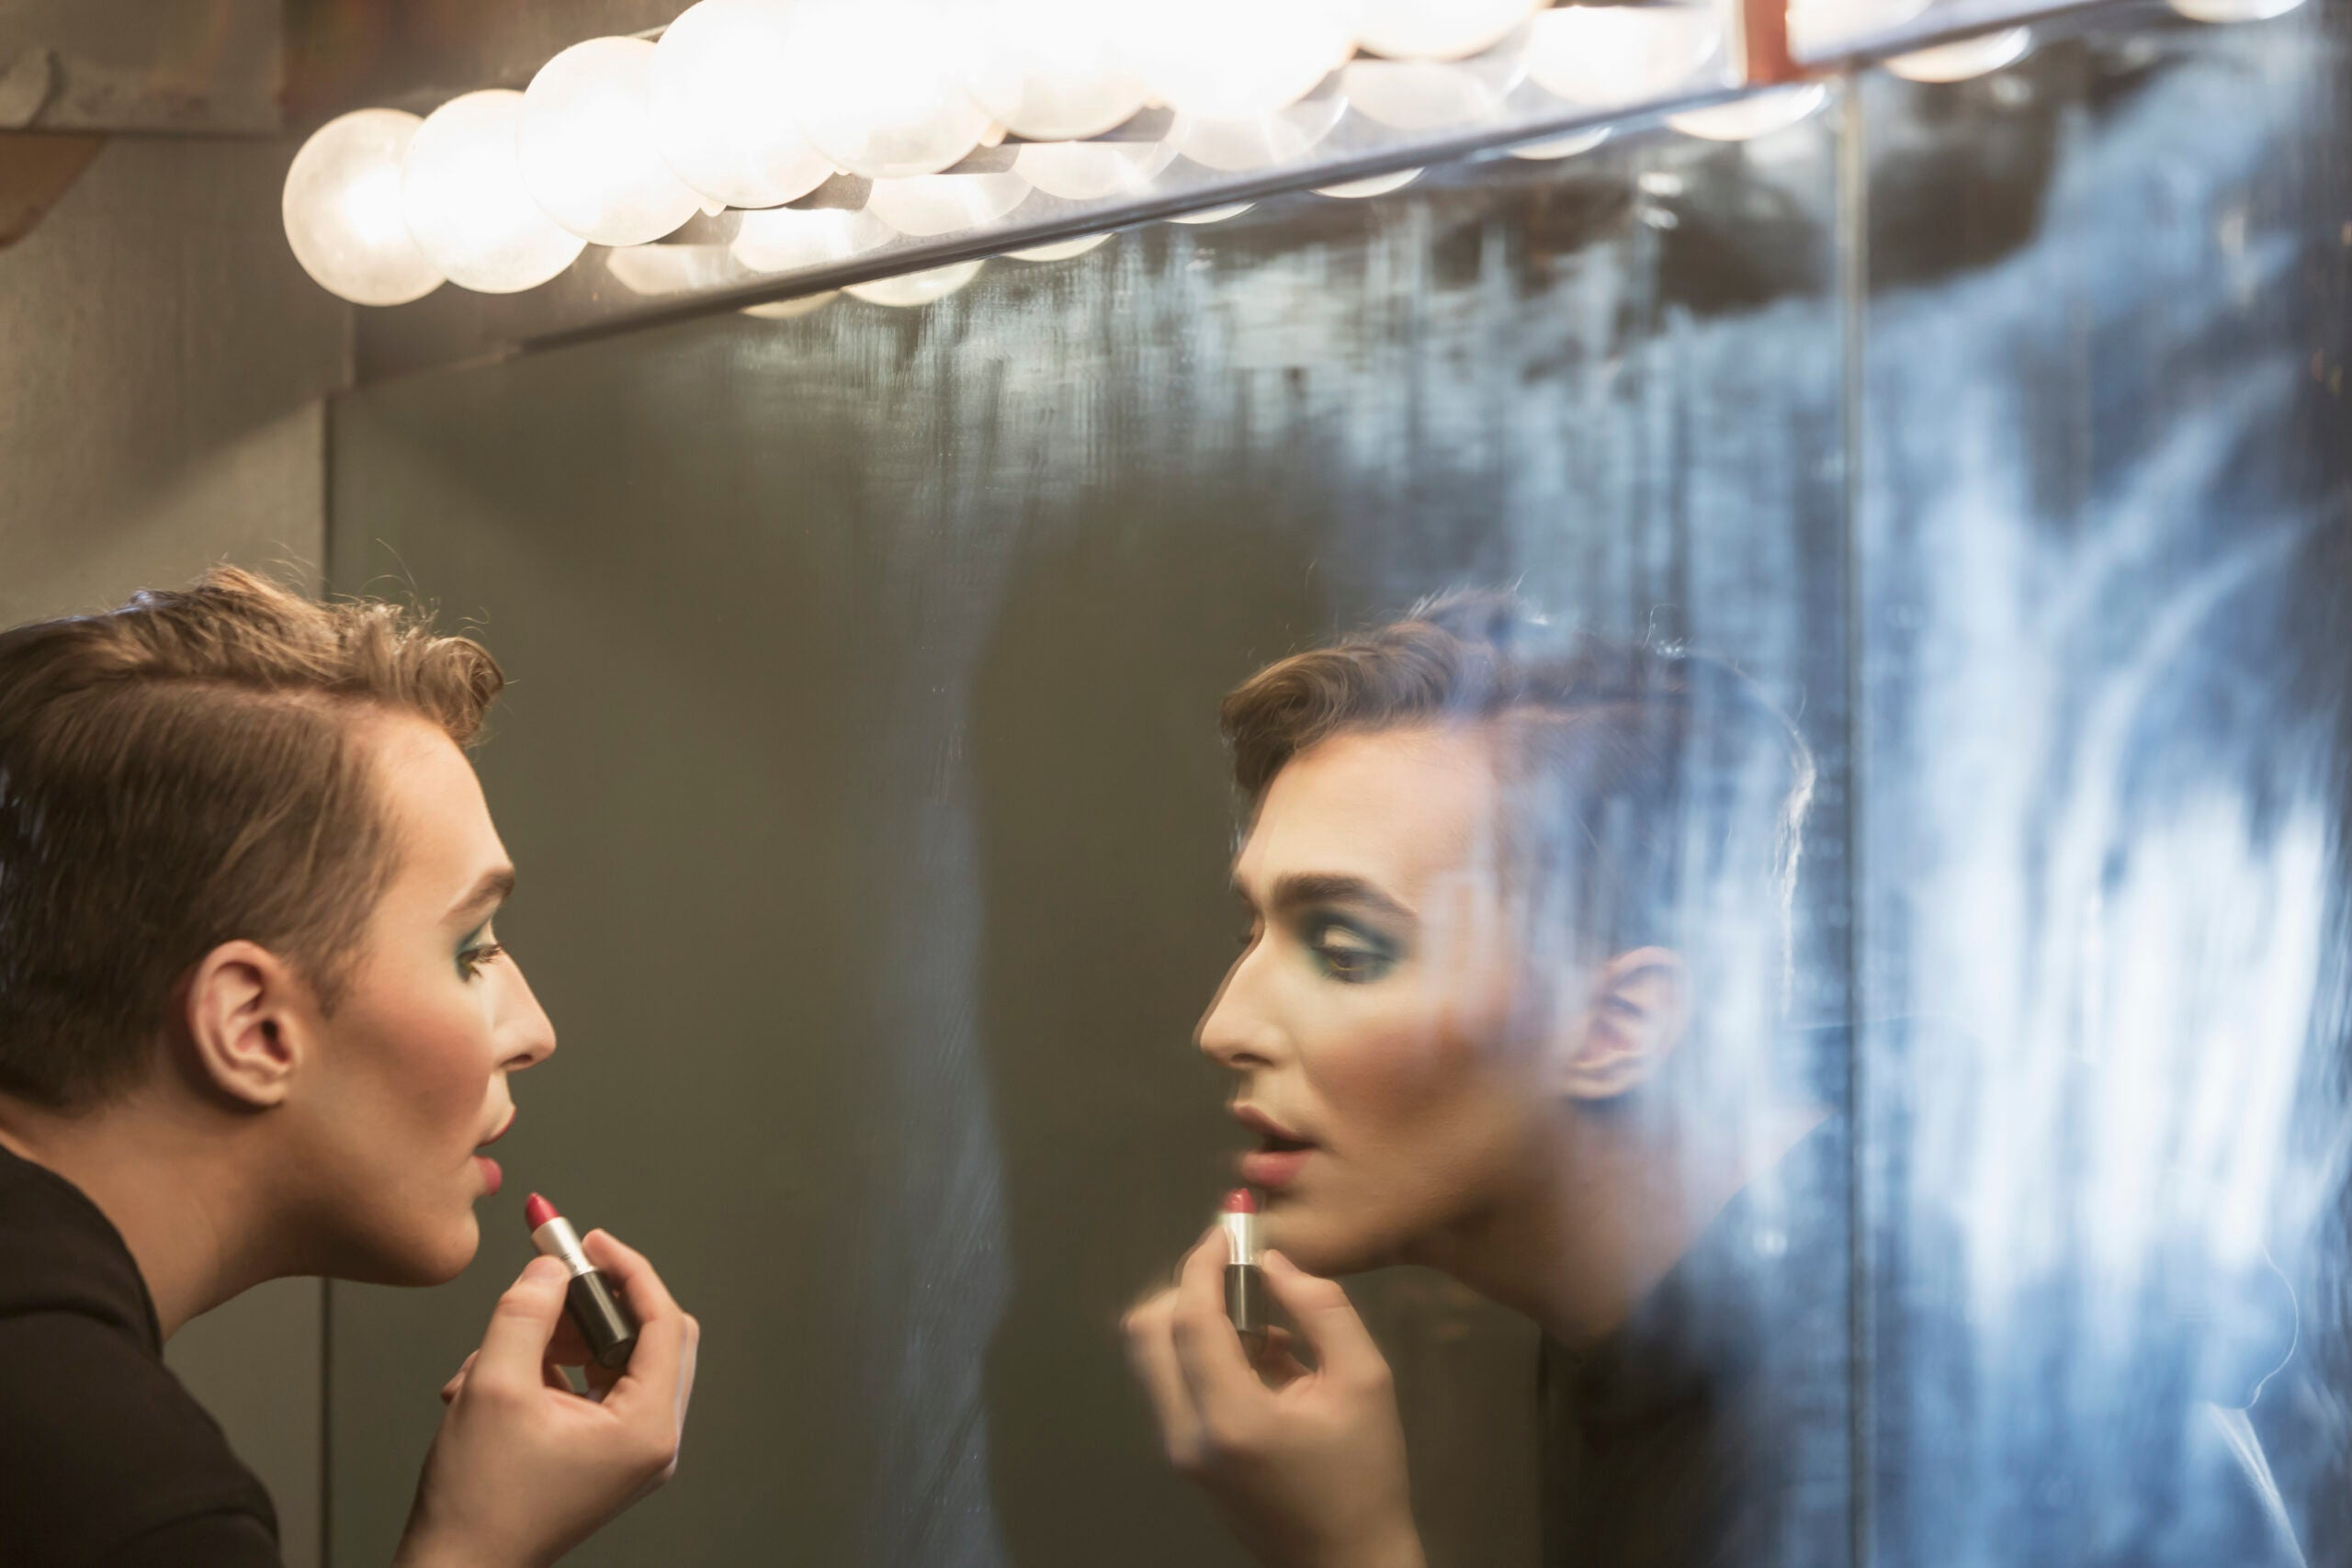 Young man in dressing room applying make-up - drag queen